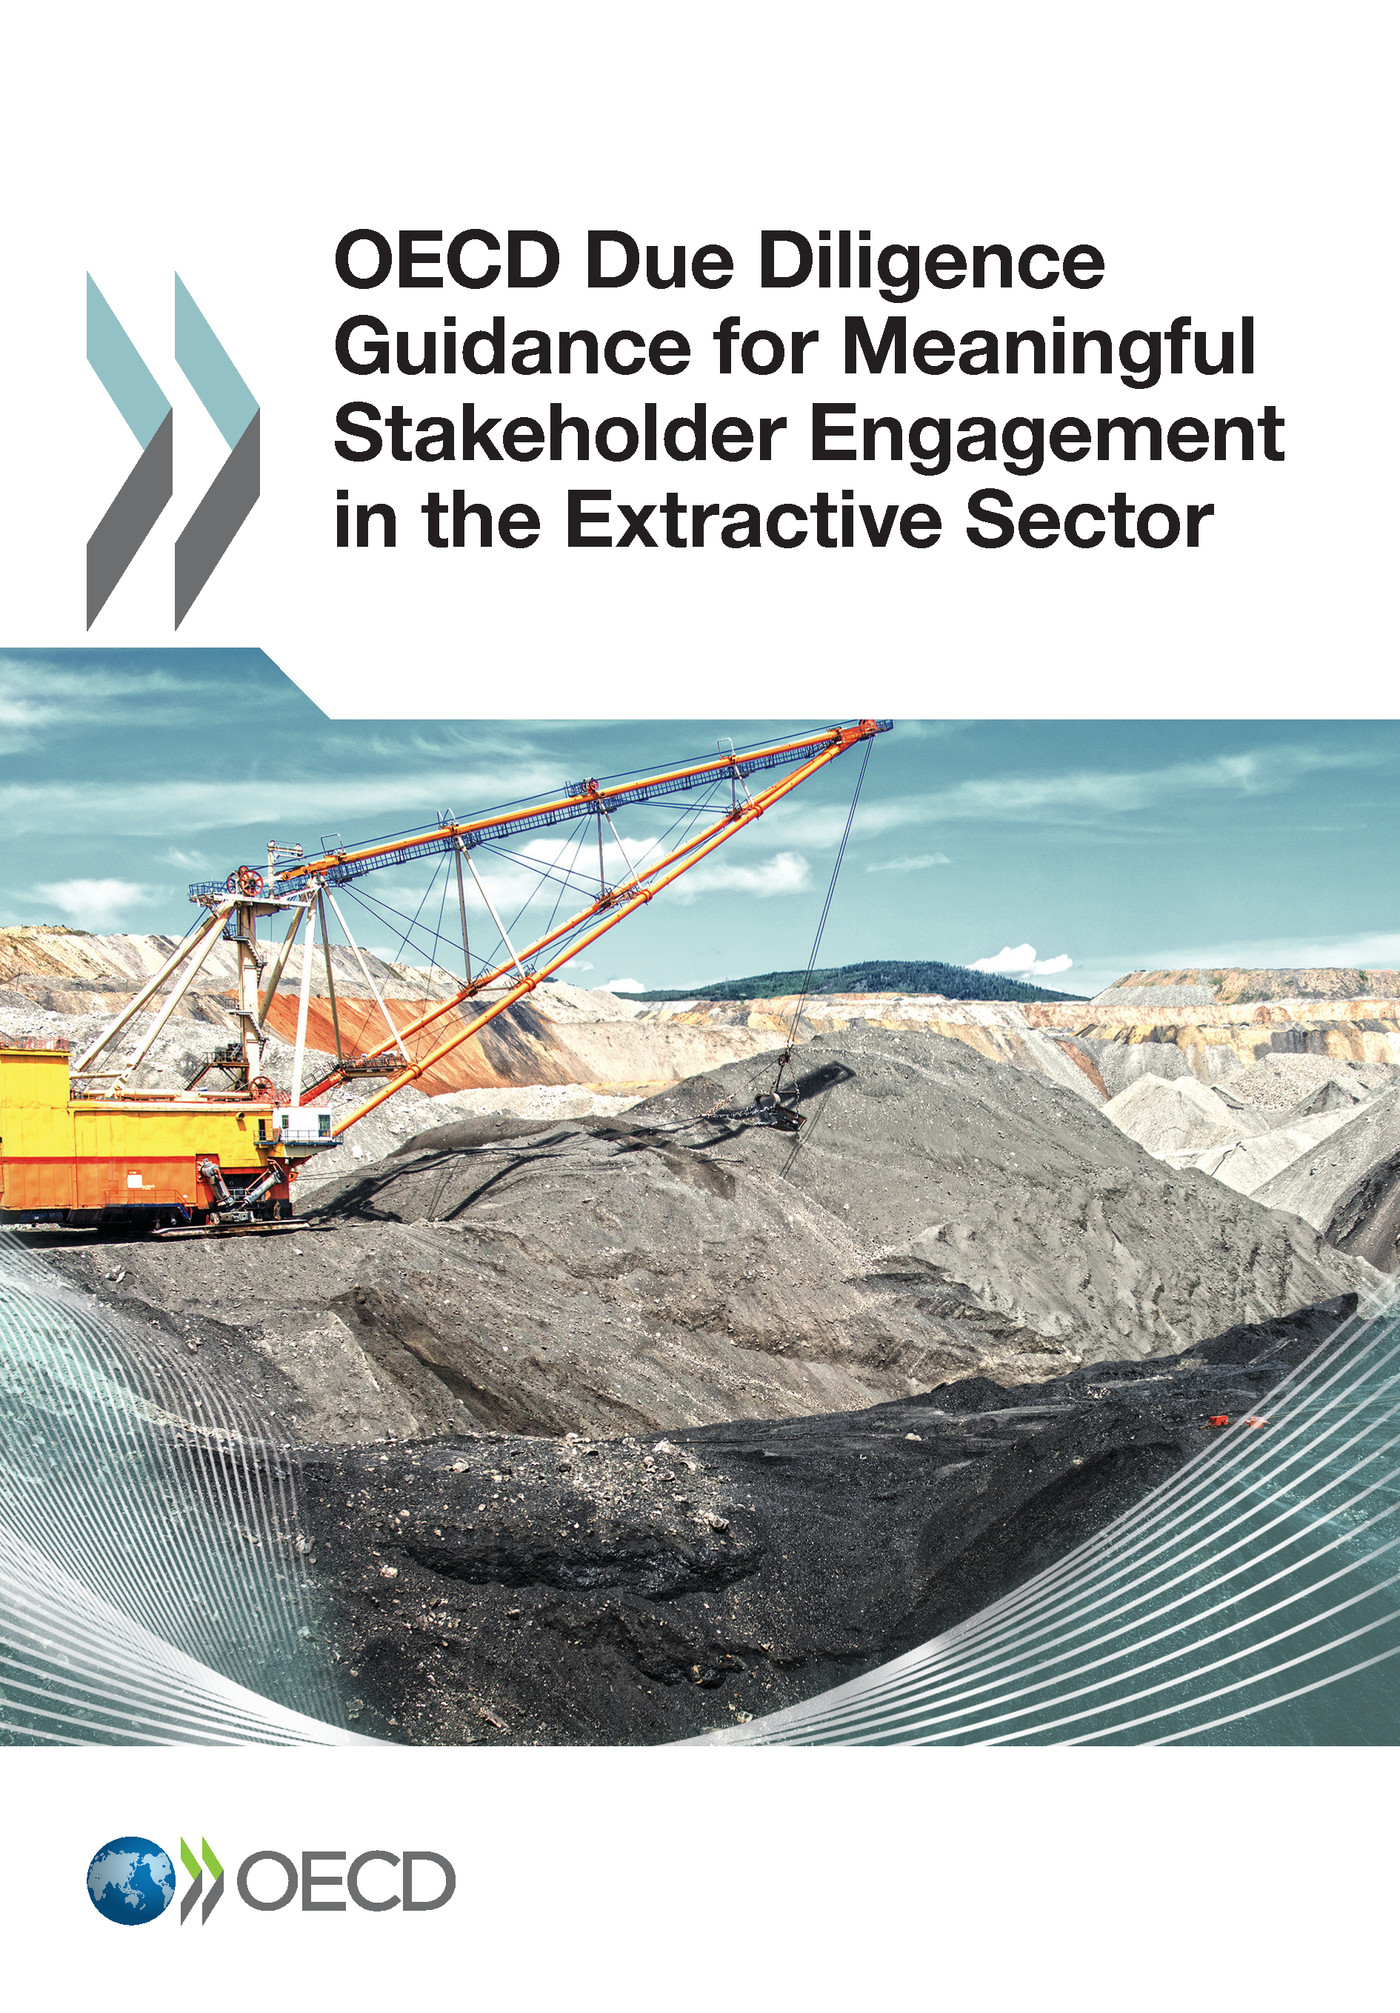 OECD Due Diligence Guidance for Meaningful Stakeholder Engagement in the Extractive Sector De  Collectif - OCDE / OECD